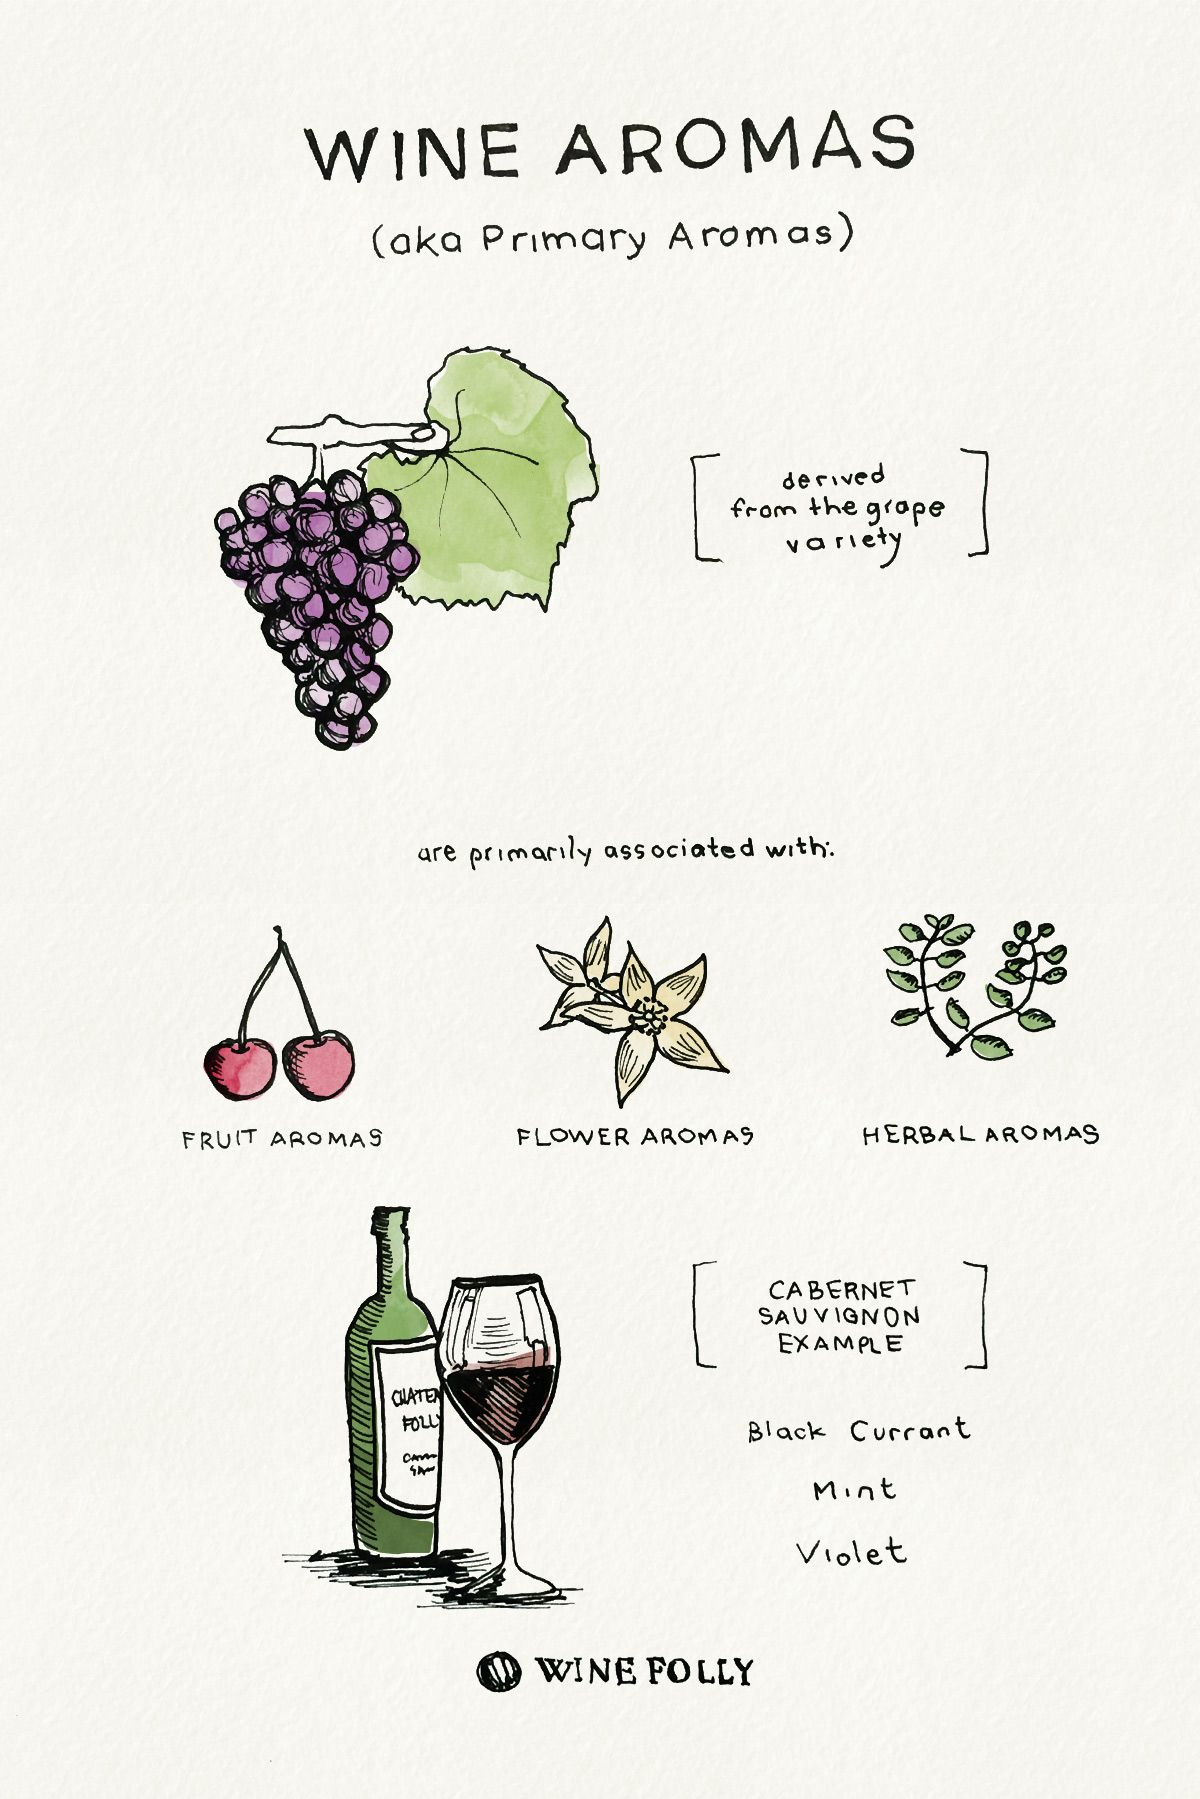 tips on tasting wine bouquet vs aroma wine wine folly and wine